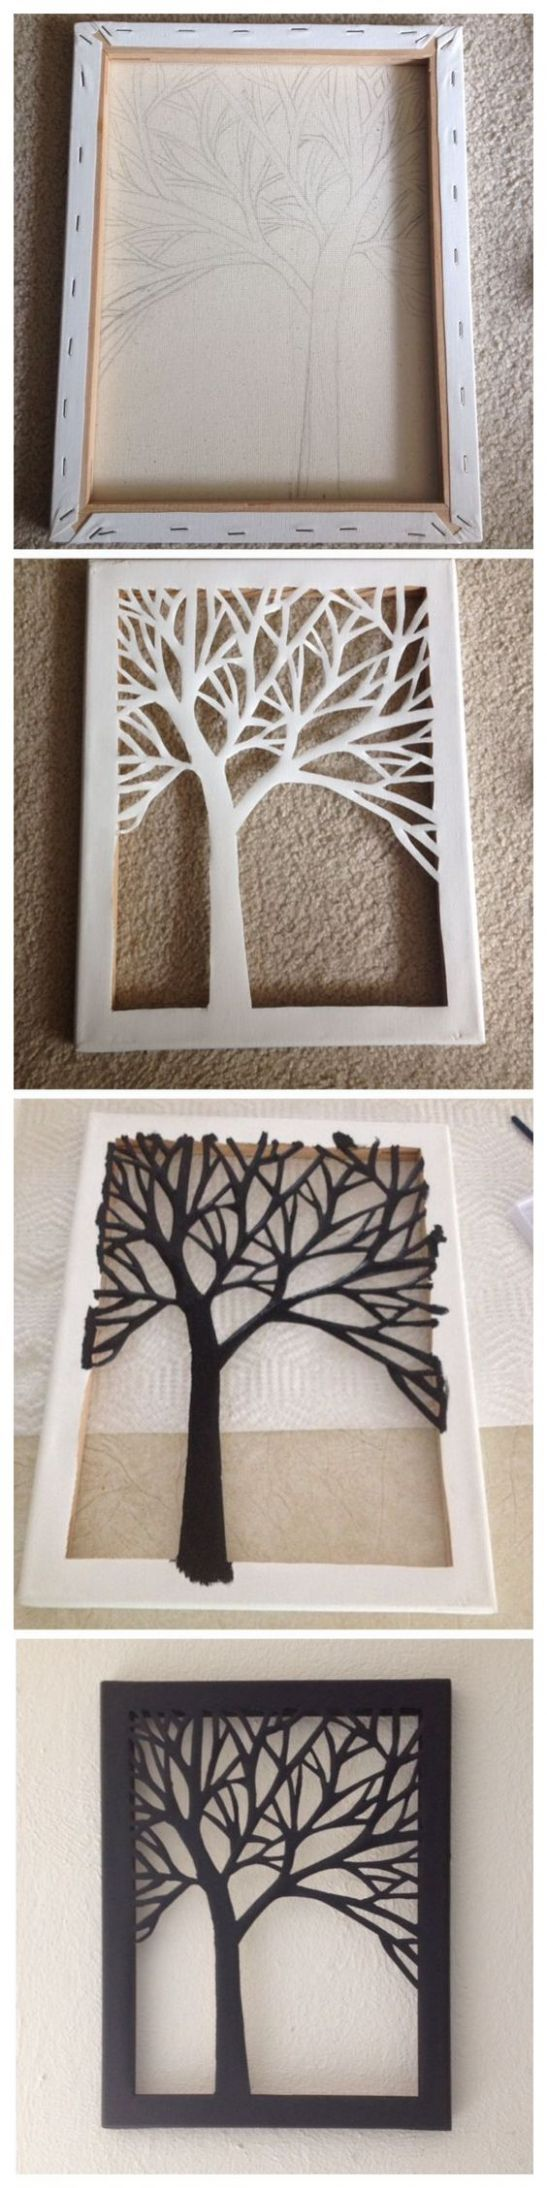 10 Best DIY Wall Art Ideas (Designs and Decorations) for 10